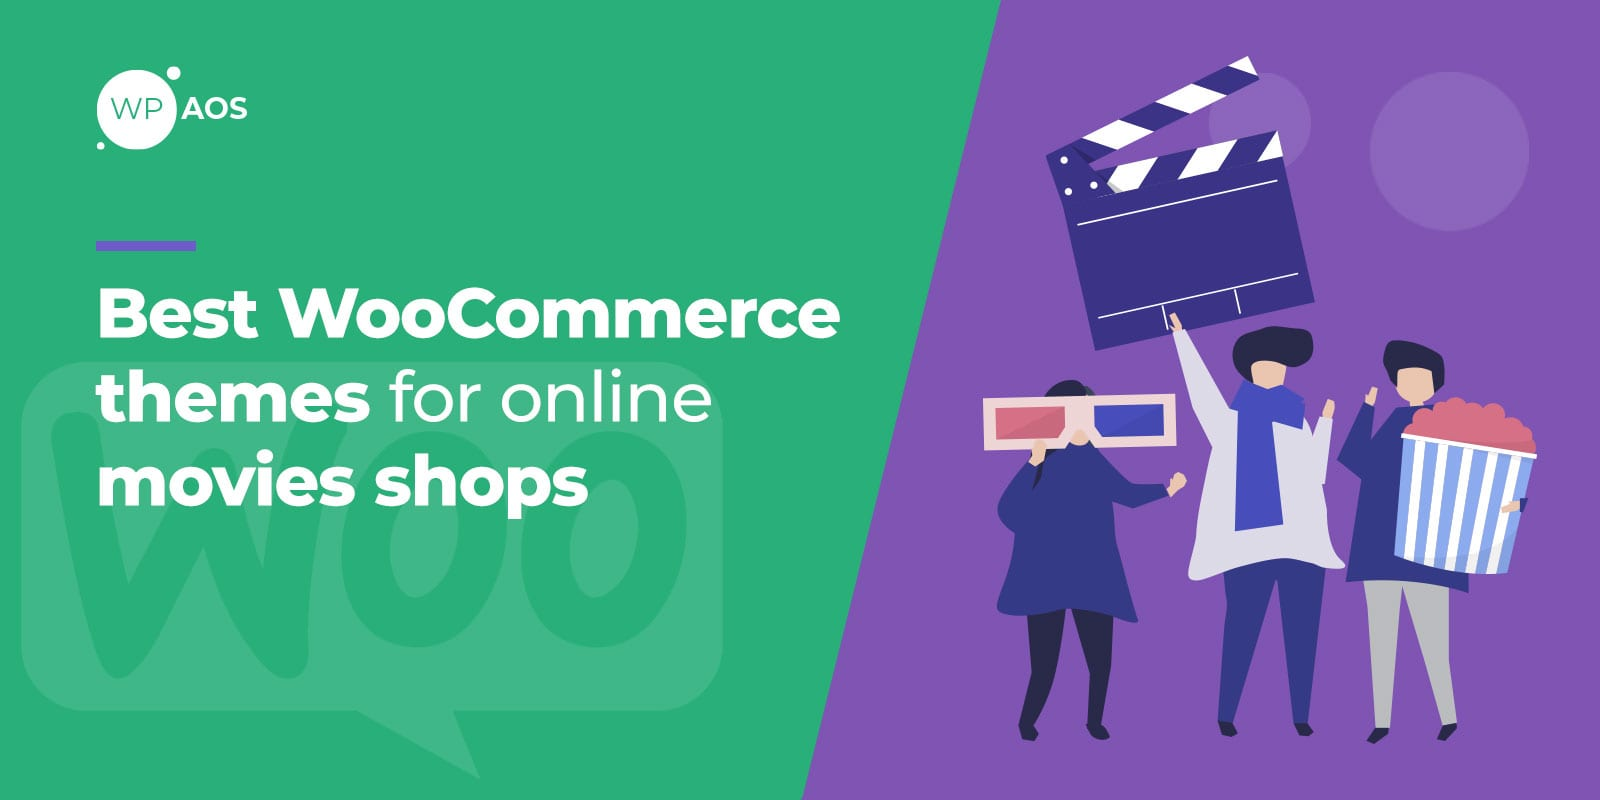 Best WooCommerce Themes for Online Movies Shops, wpaos